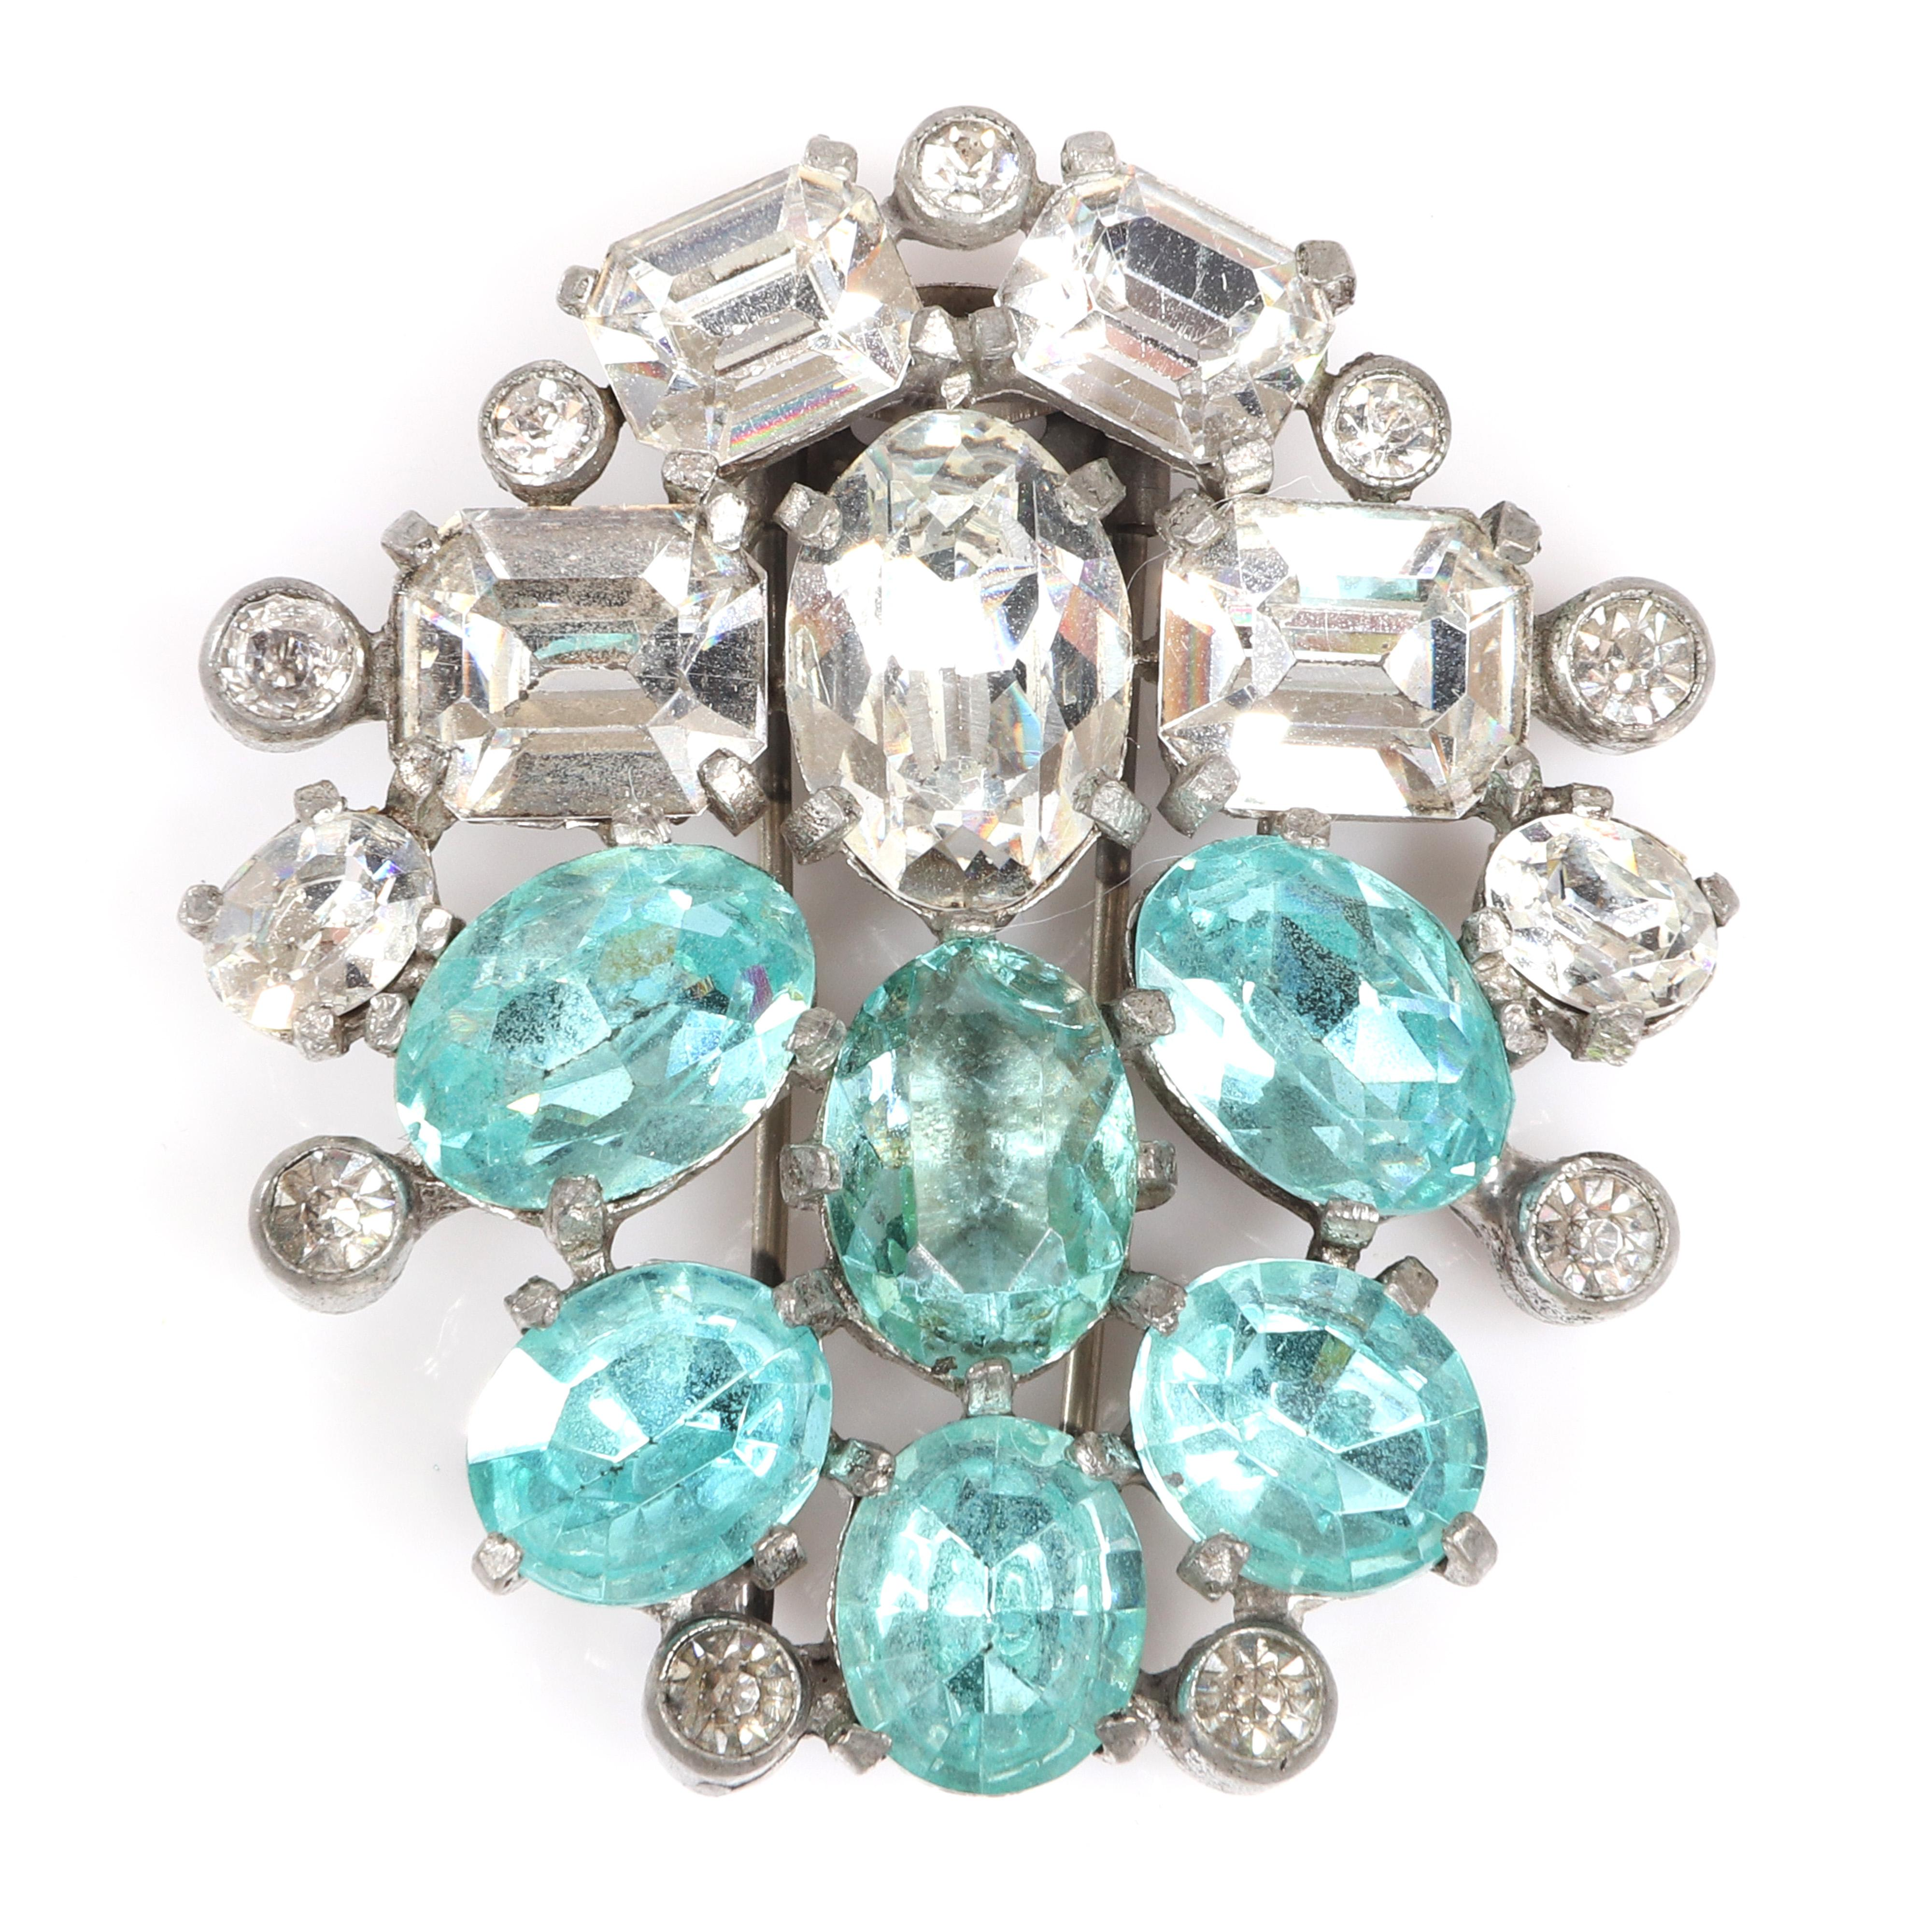 "Eisenberg Original aqua and clear stone dress clip in silver pot metal with large clear emerald-cut, aqua oval-cut stones and bezel-set accents, c. 1940. 2 1/8"" x 2"""